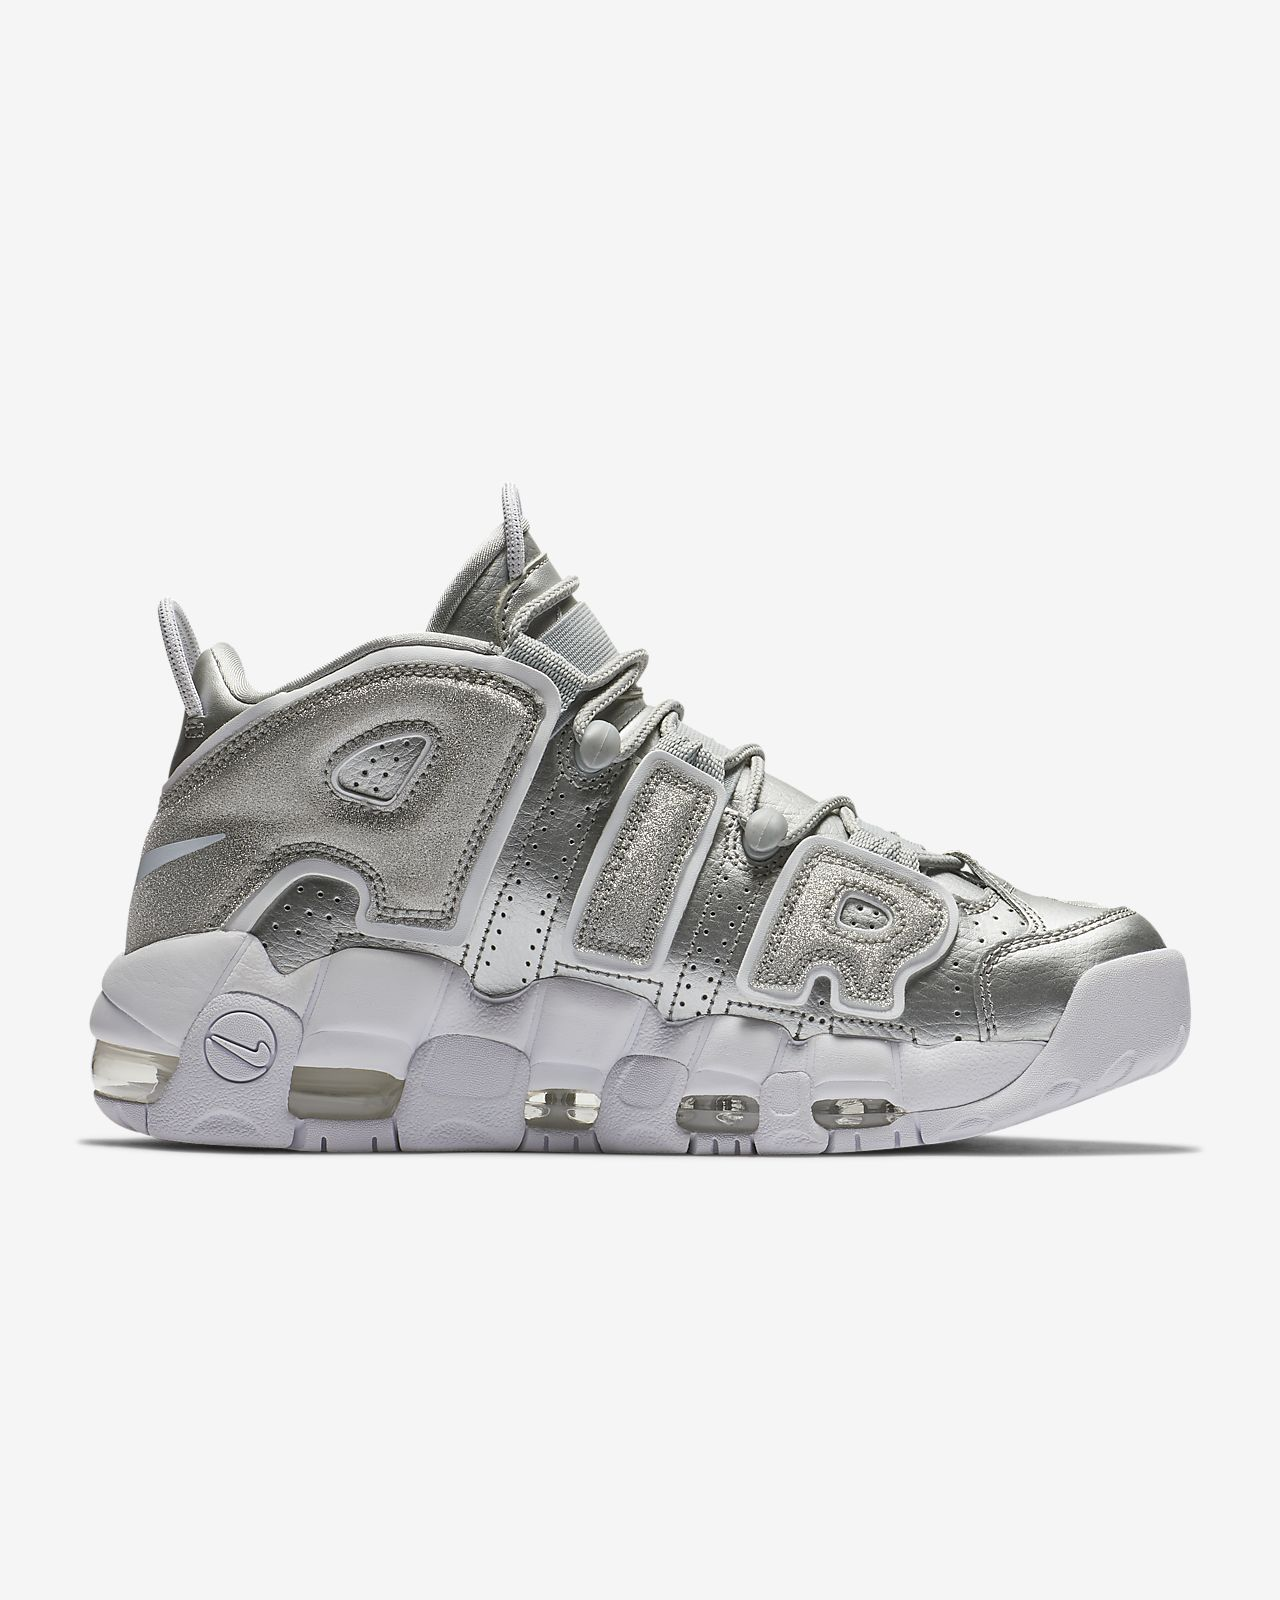 separation shoes f9c5f 2df91 ... Nike Air More Uptempo Women s Shoe